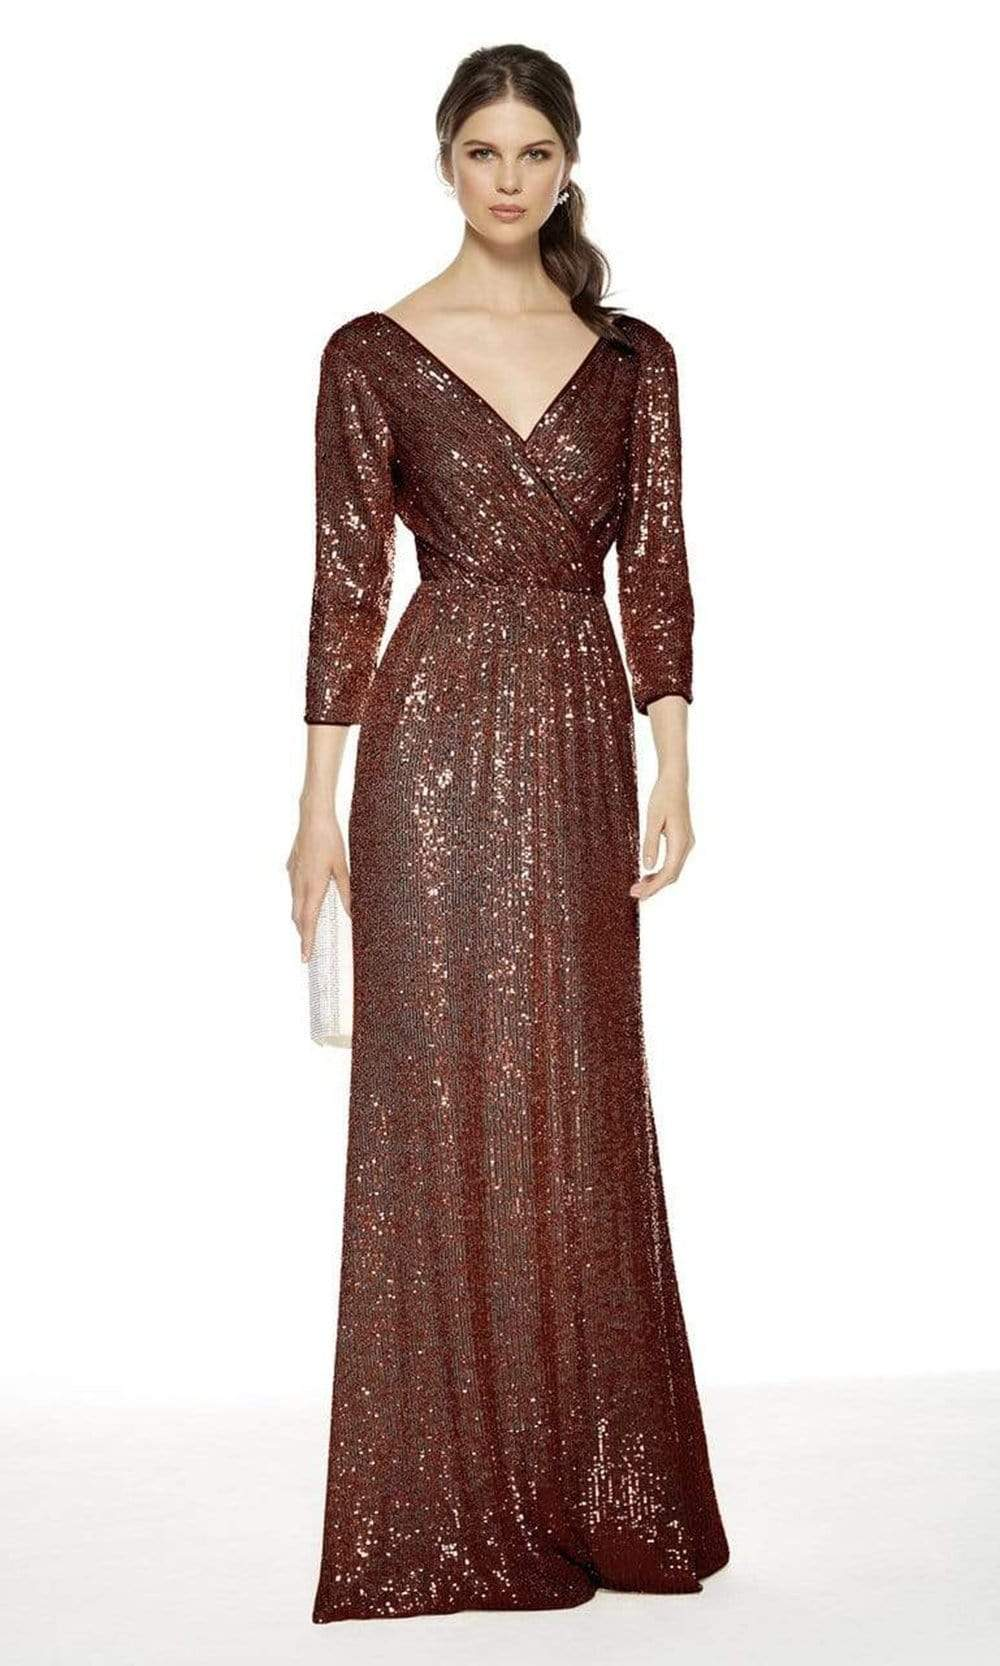 Alyce Paris - 27358 Three-Fourth Sequined All Over Column Dress from Alyce Paris